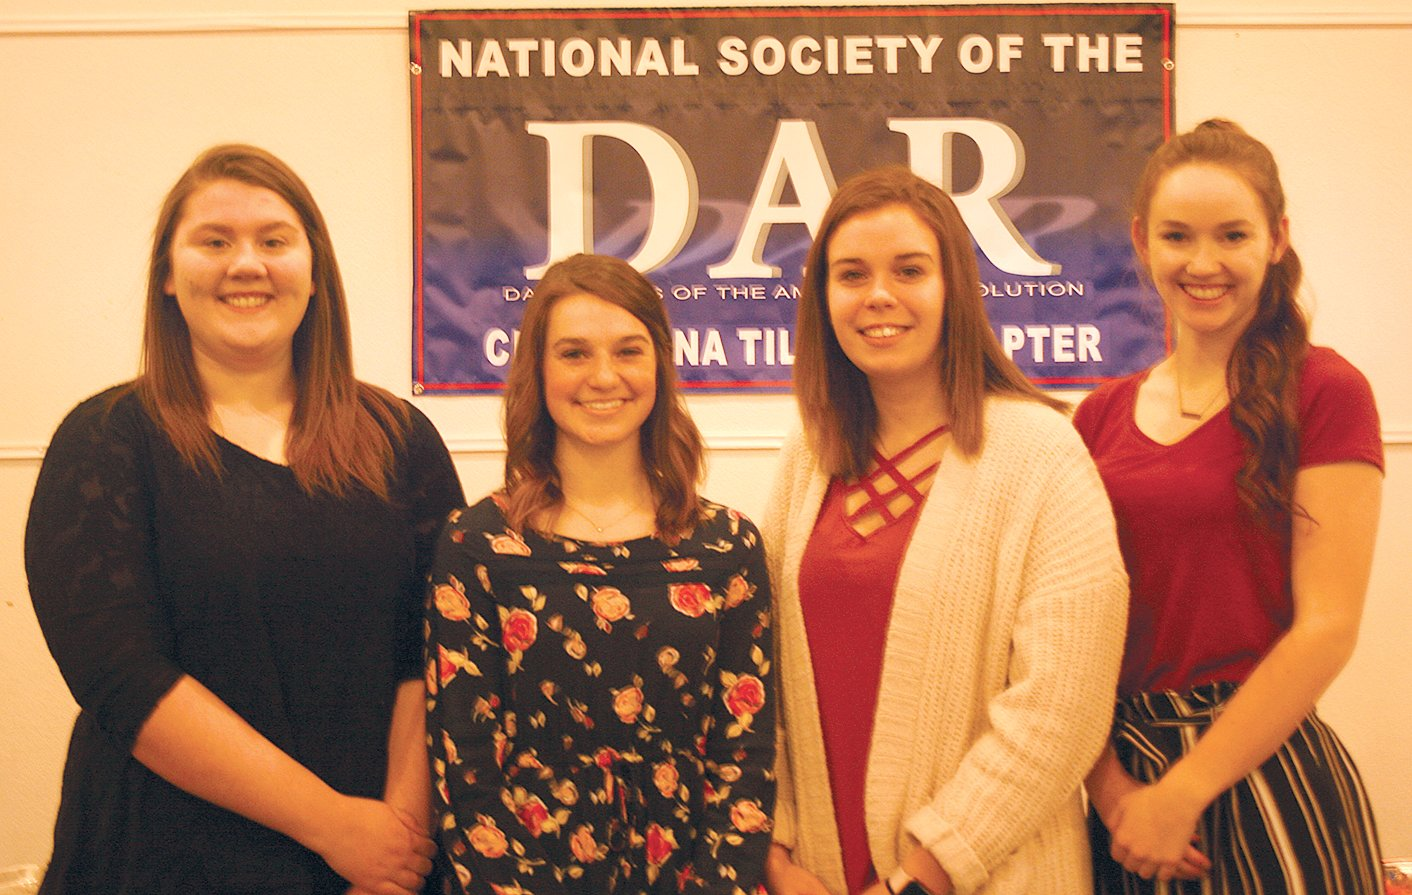 This year's DAR Good Citizen award winners were recognized by the Christiana Tillson chapter of the Daughters of the American Revolution on Saturday, March 2, at the Free Methodist Church in Hillsboro. From the left are Cambria Underwood of Farmersville, Grace Anderson of Hillsboro, Carlee Ernst of Litchfield and Lillian Gretak of Mt. Olive. Not pictured are Cody Knodle of Fillmore and Chloee Peterson of New Douglas.